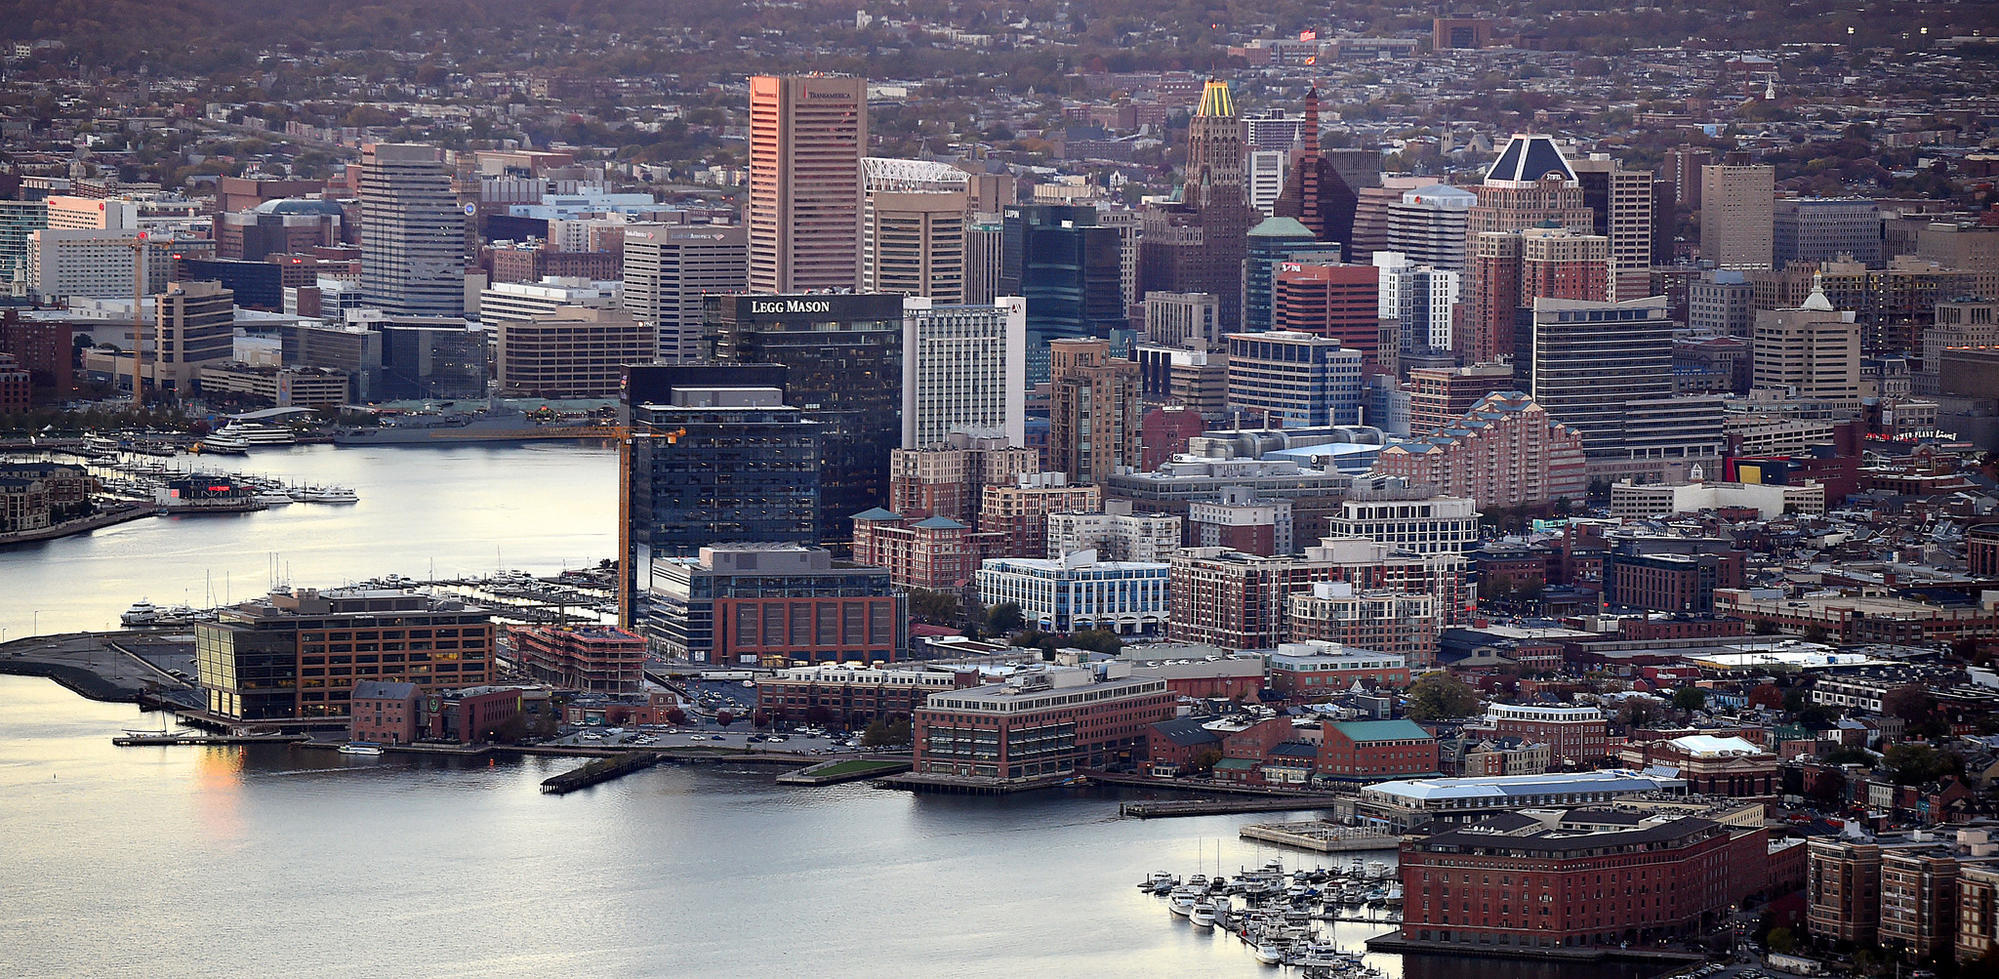 What's causing Baltimore's population loss? It's no mystery